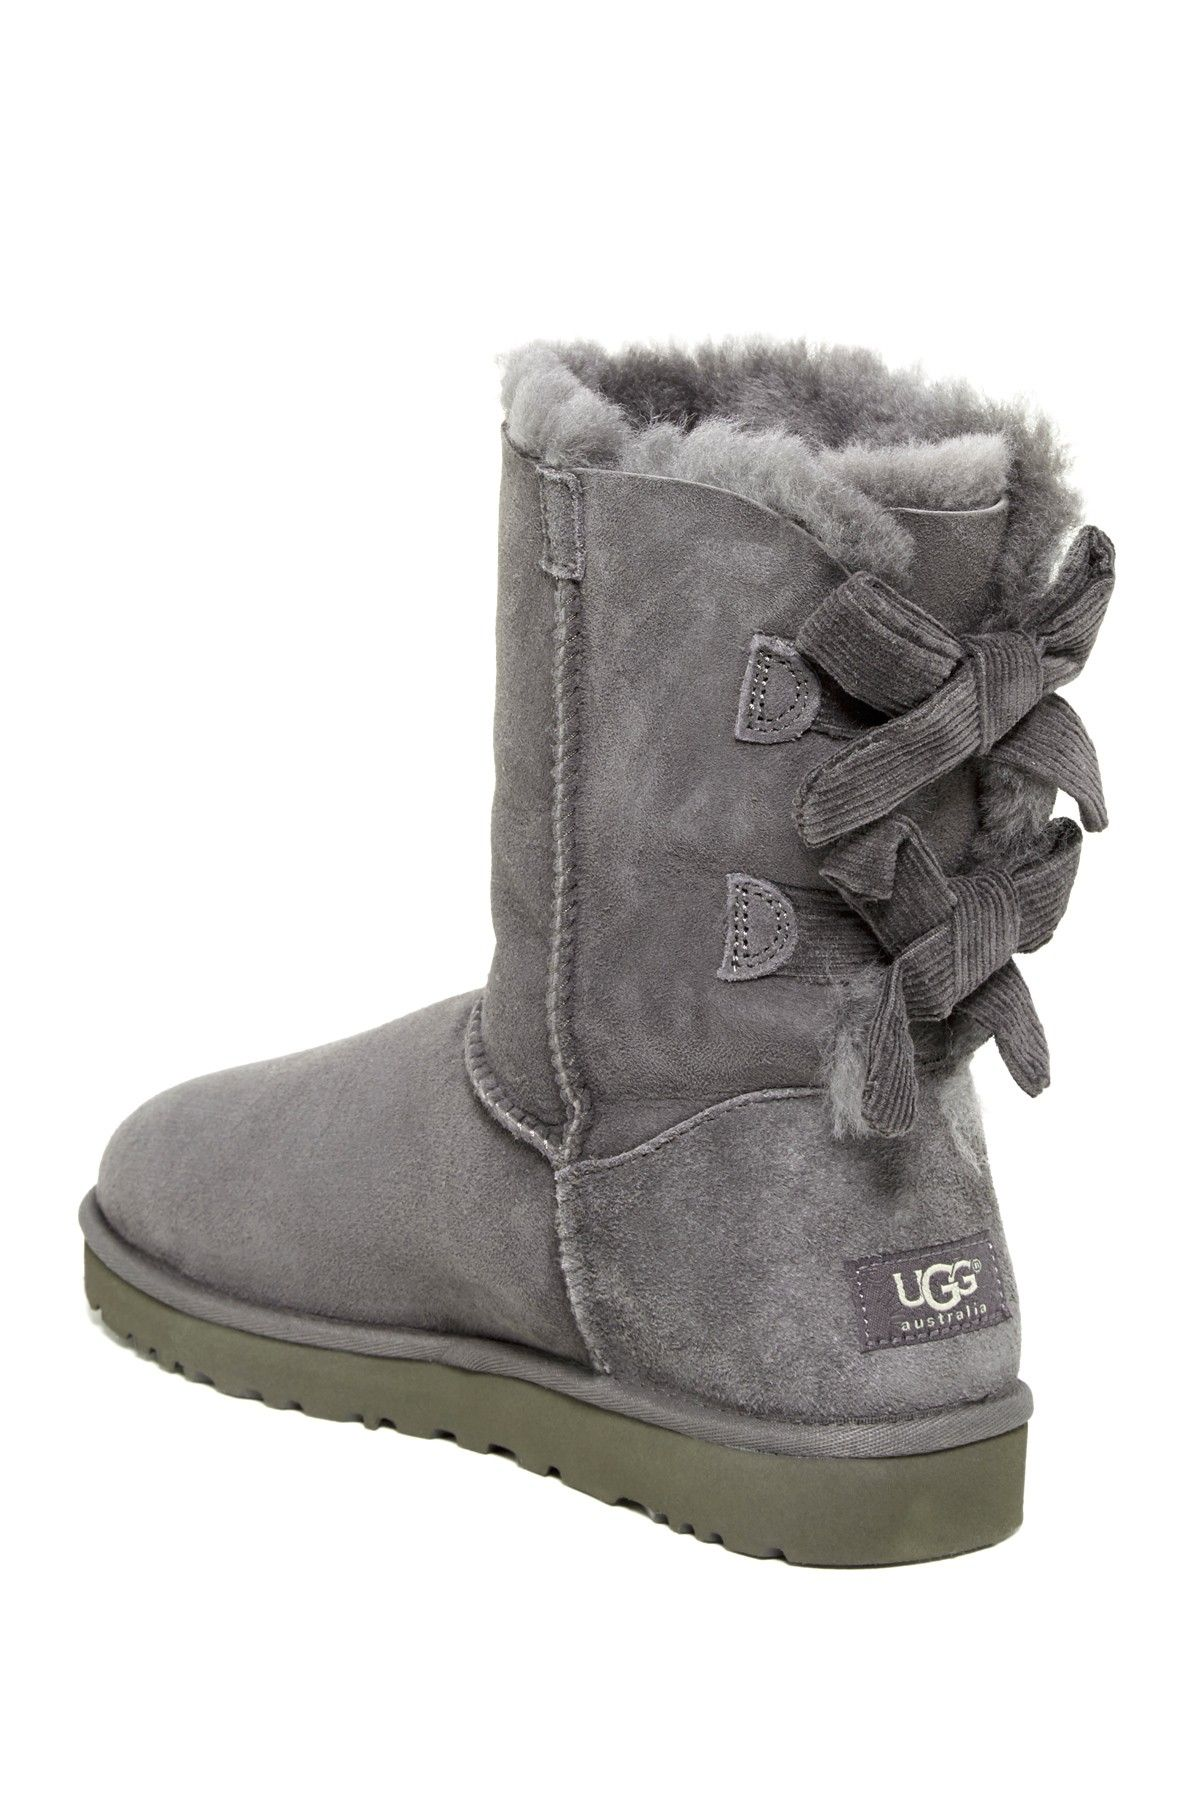 0f20c61cb13 Bailey Bow Corduroy Genuine Lamb Fur Lined Boot | Wish List | Uggs ...